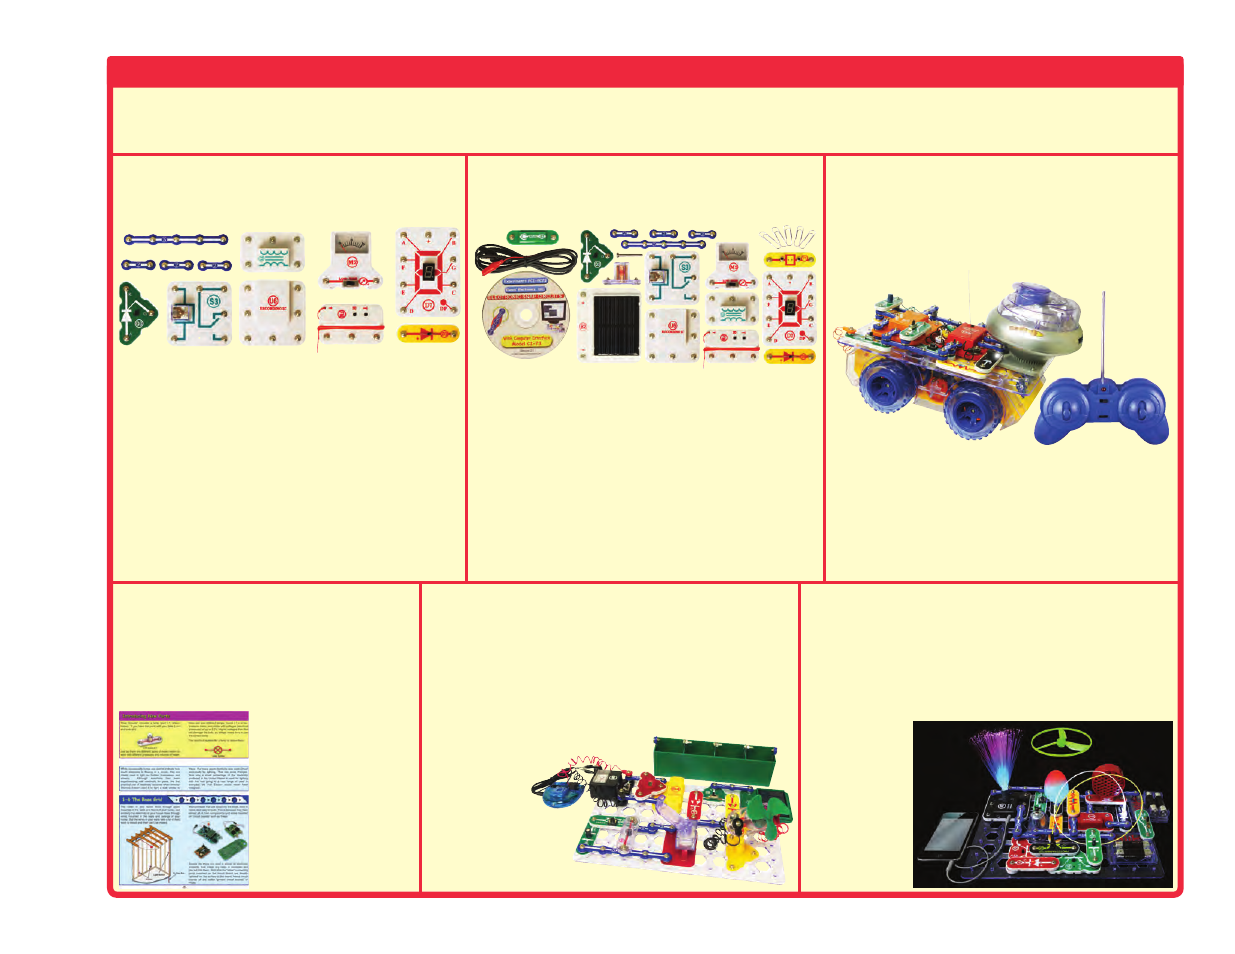 Other snap circuits, Projects, Upgrade kit | Elenco Upgrade